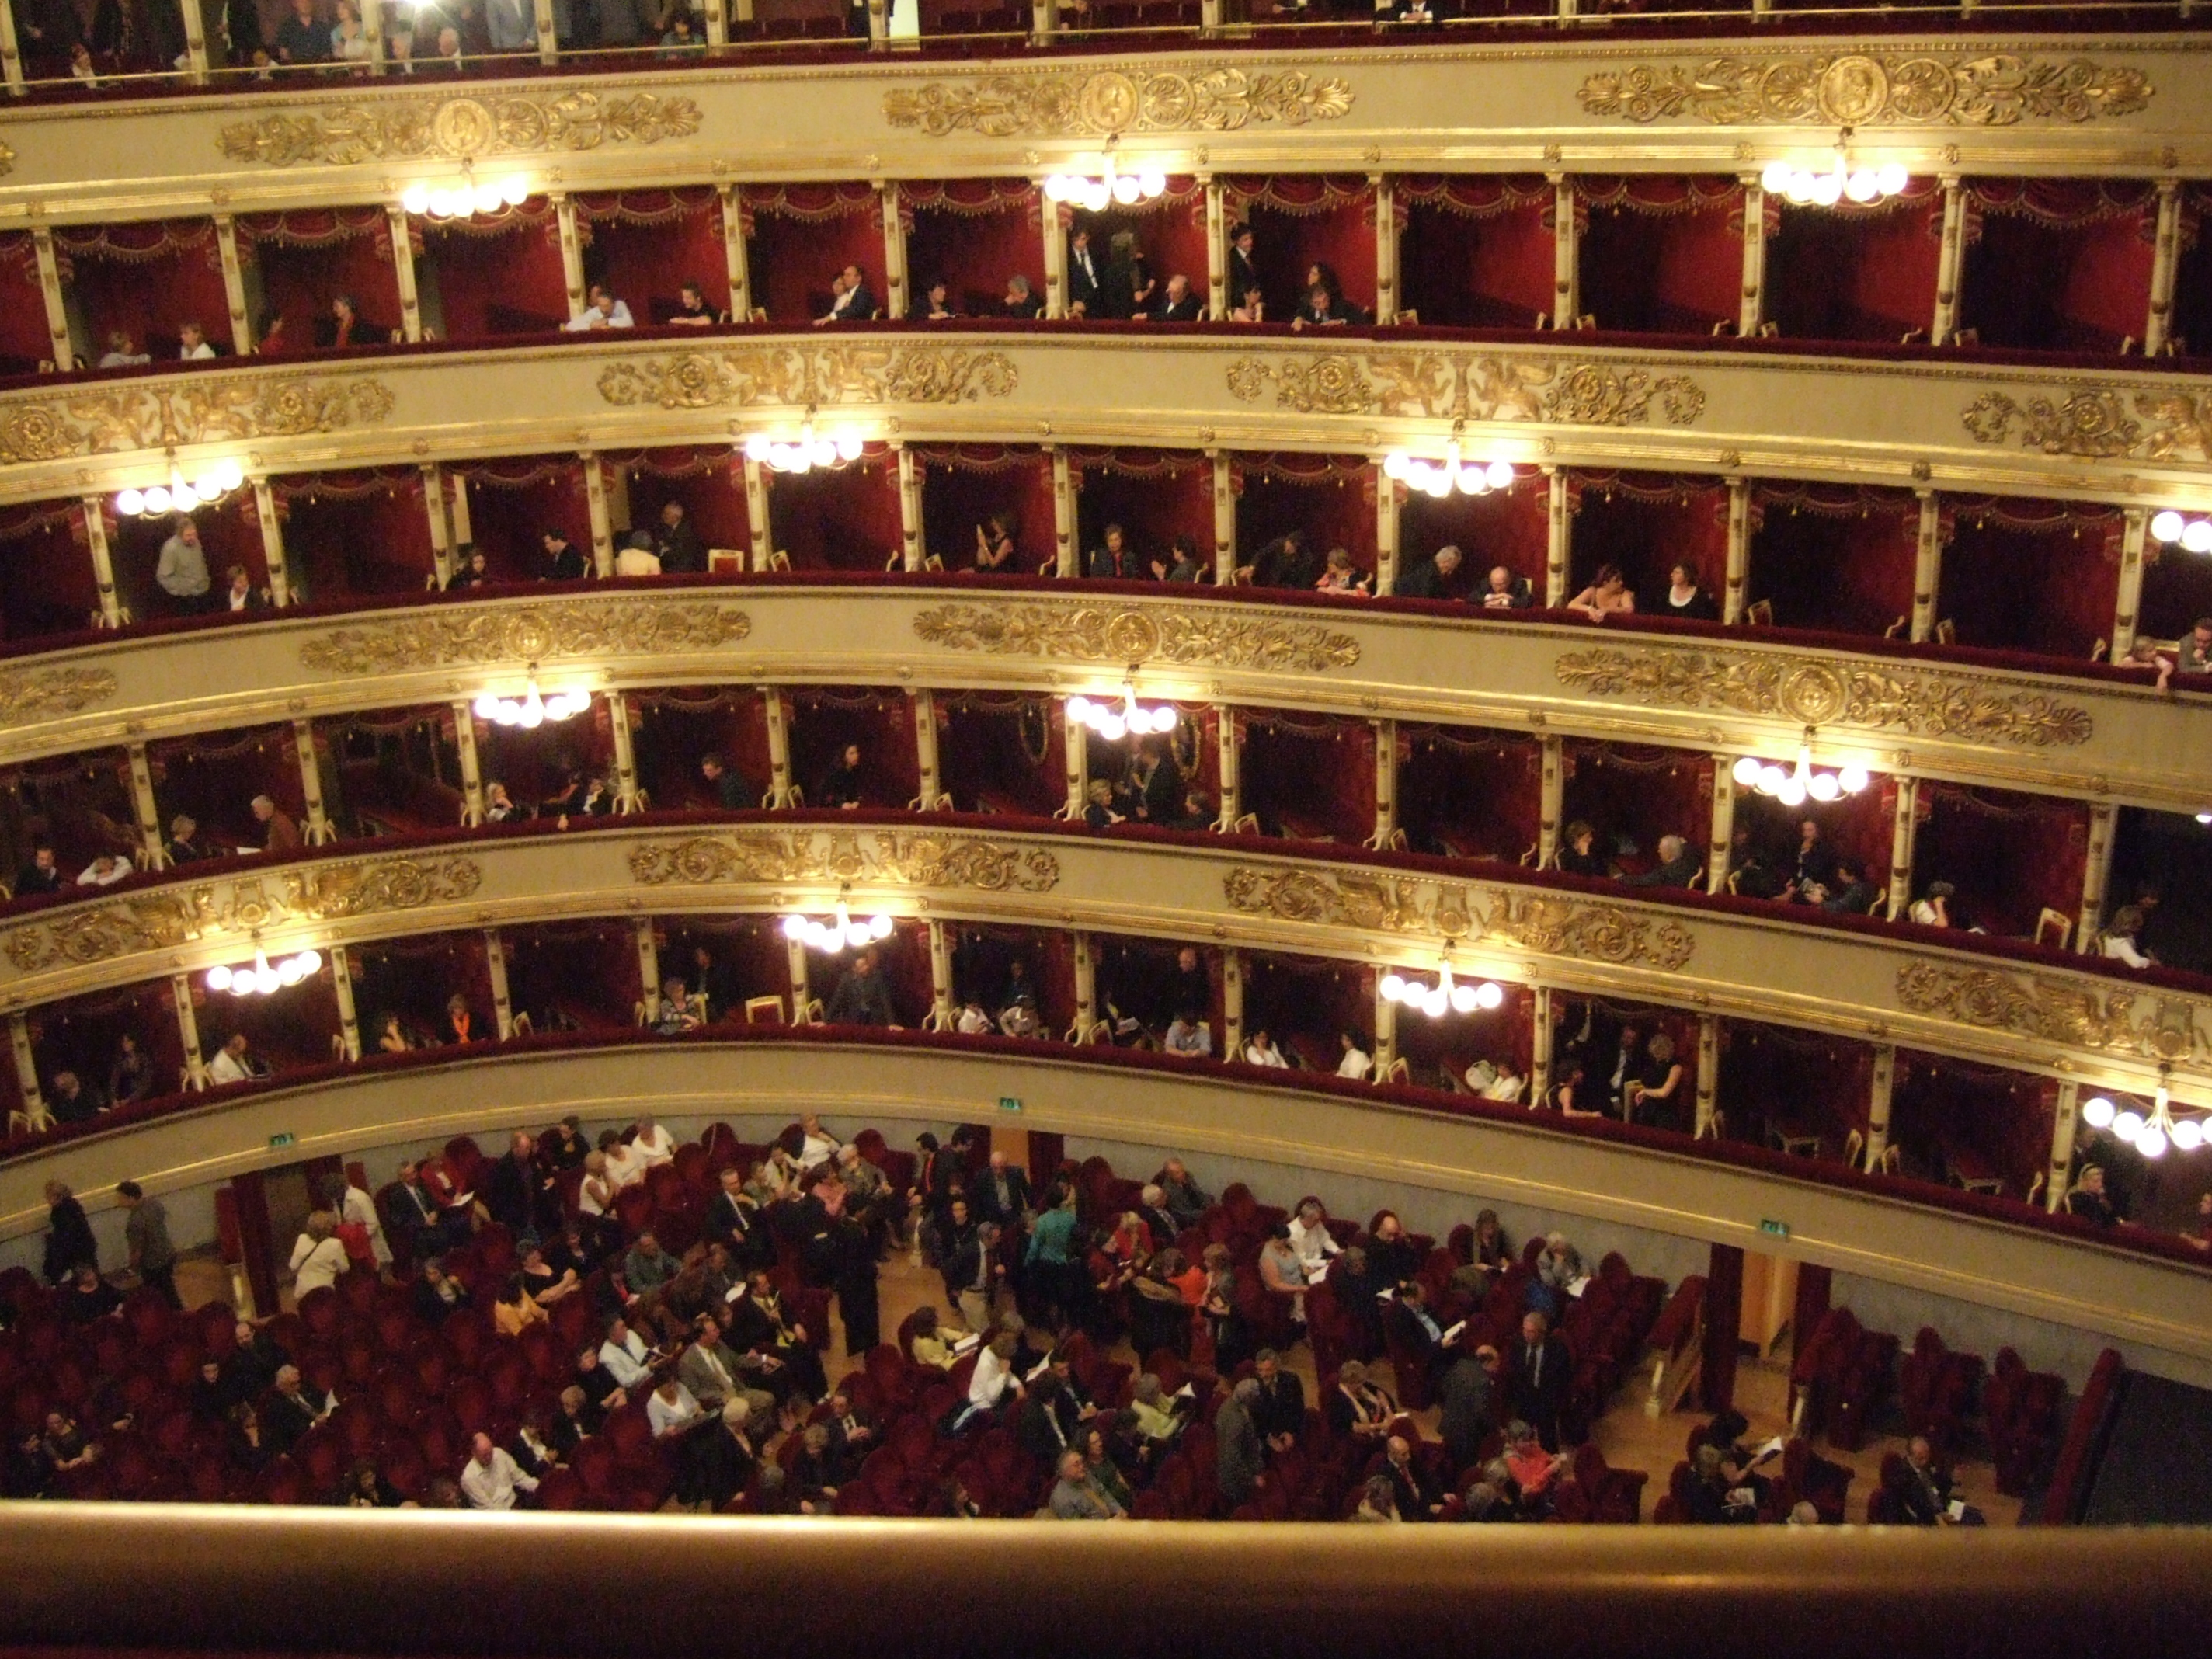 La Scala Theatre and Opera House